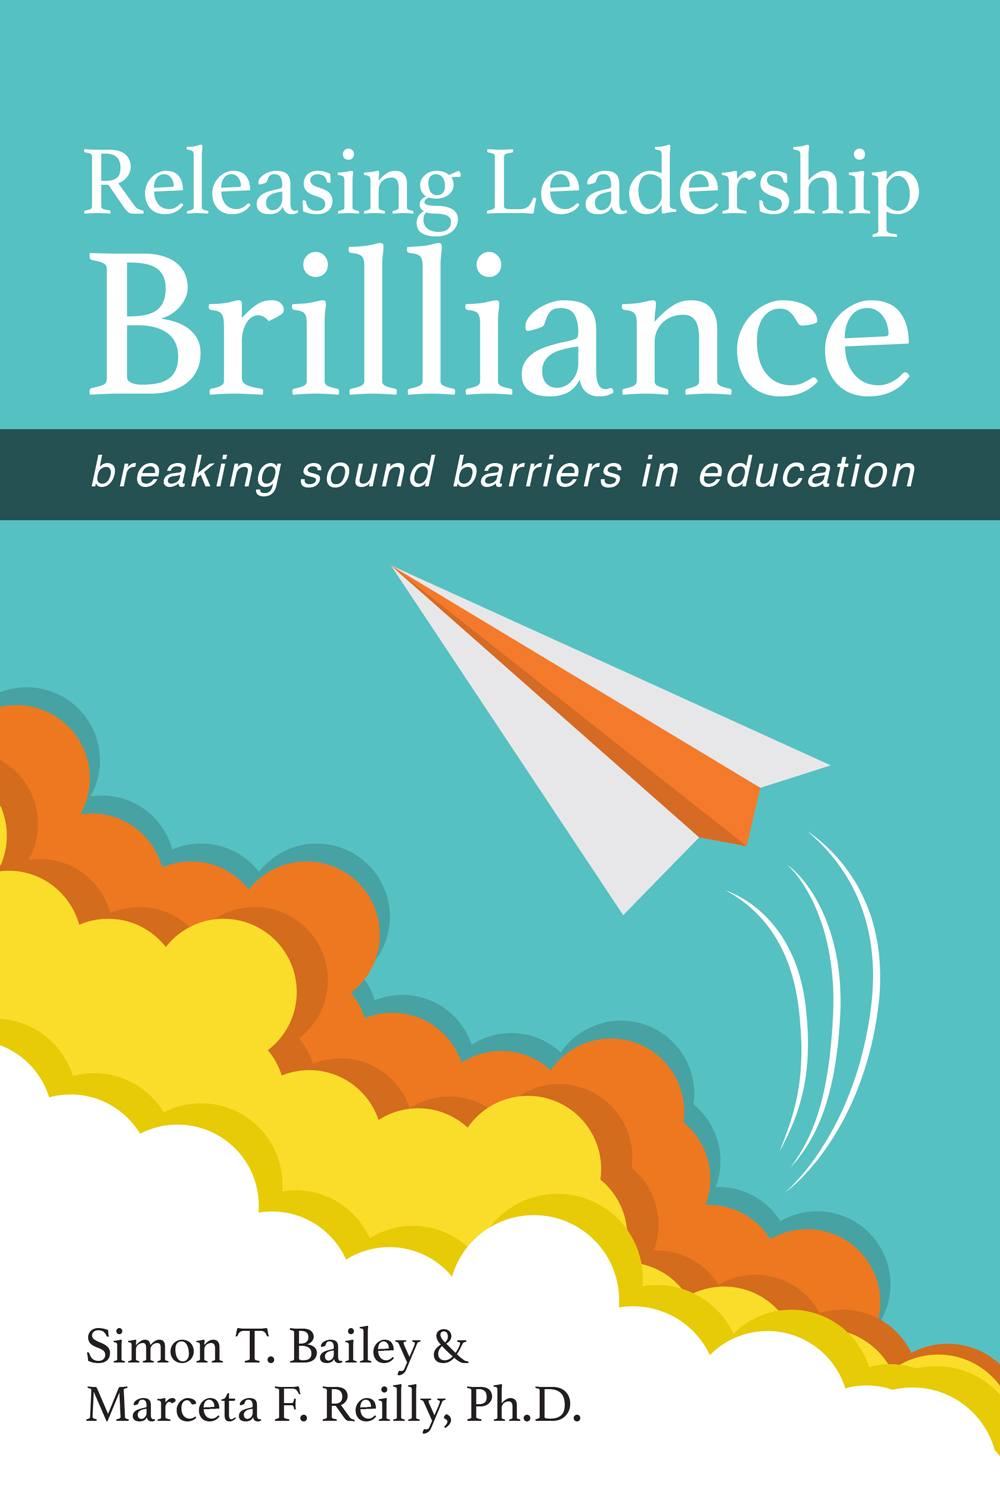 Releasing Leadership Brilliance_February 2017